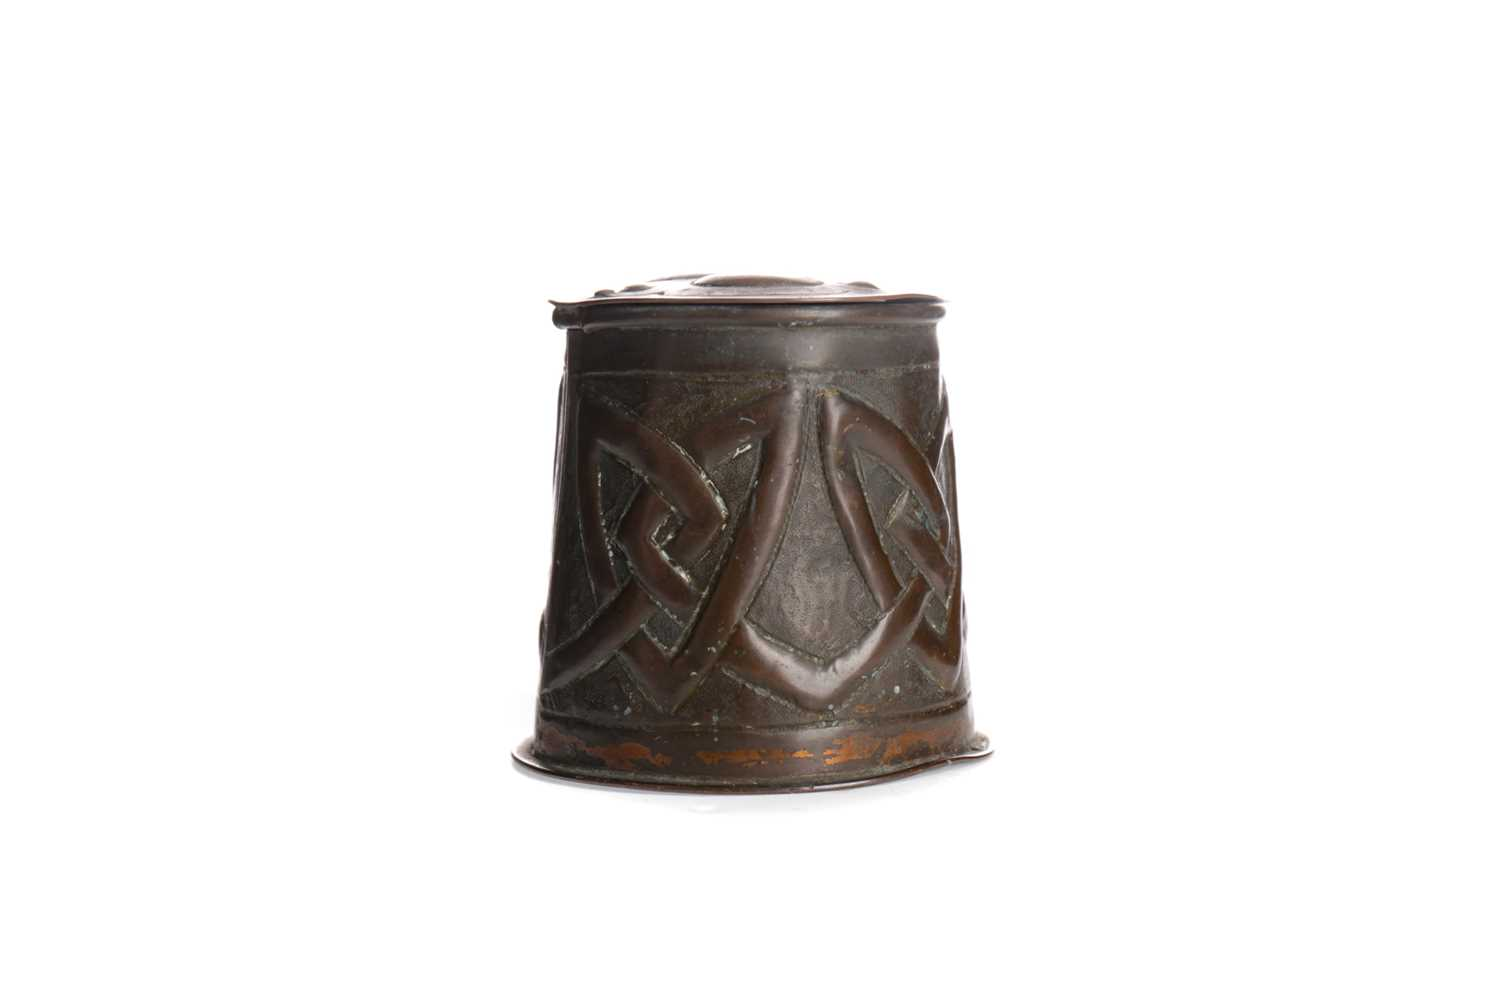 Lot 1347 - AN EARLY 20TH CENTURY ARTS & CRAFTS COPPER INKWELL